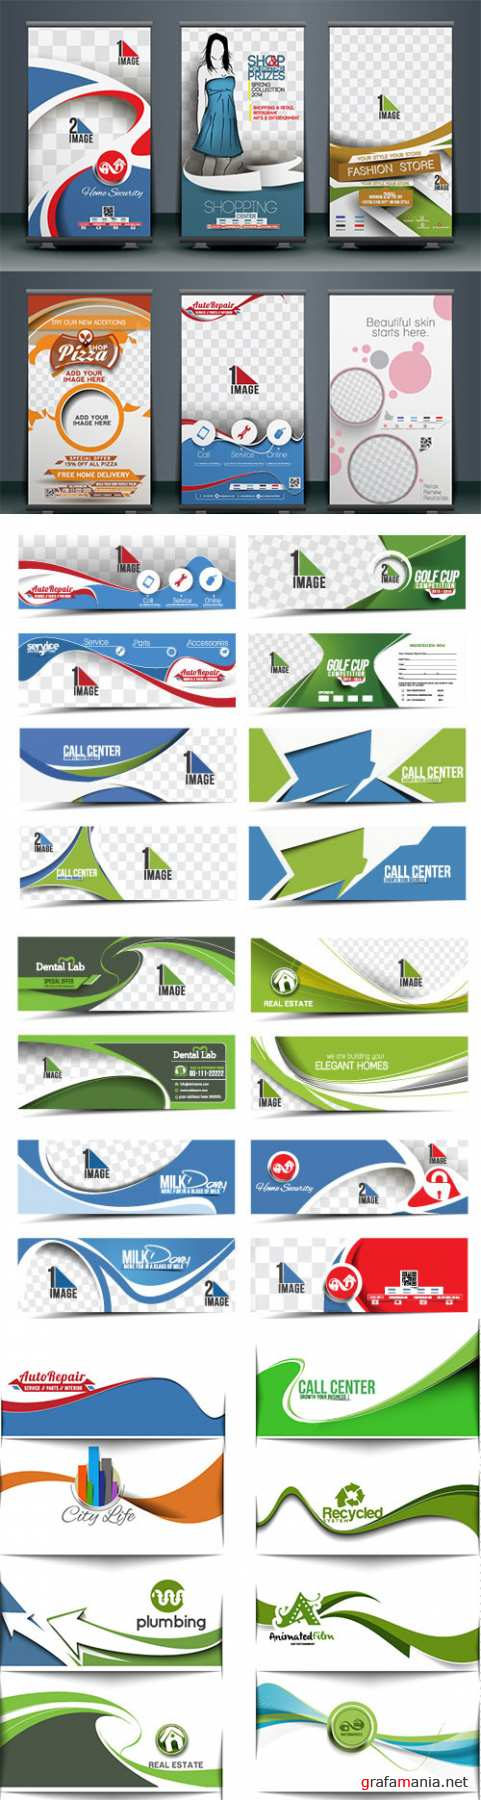 Modern horizontal banner and header template